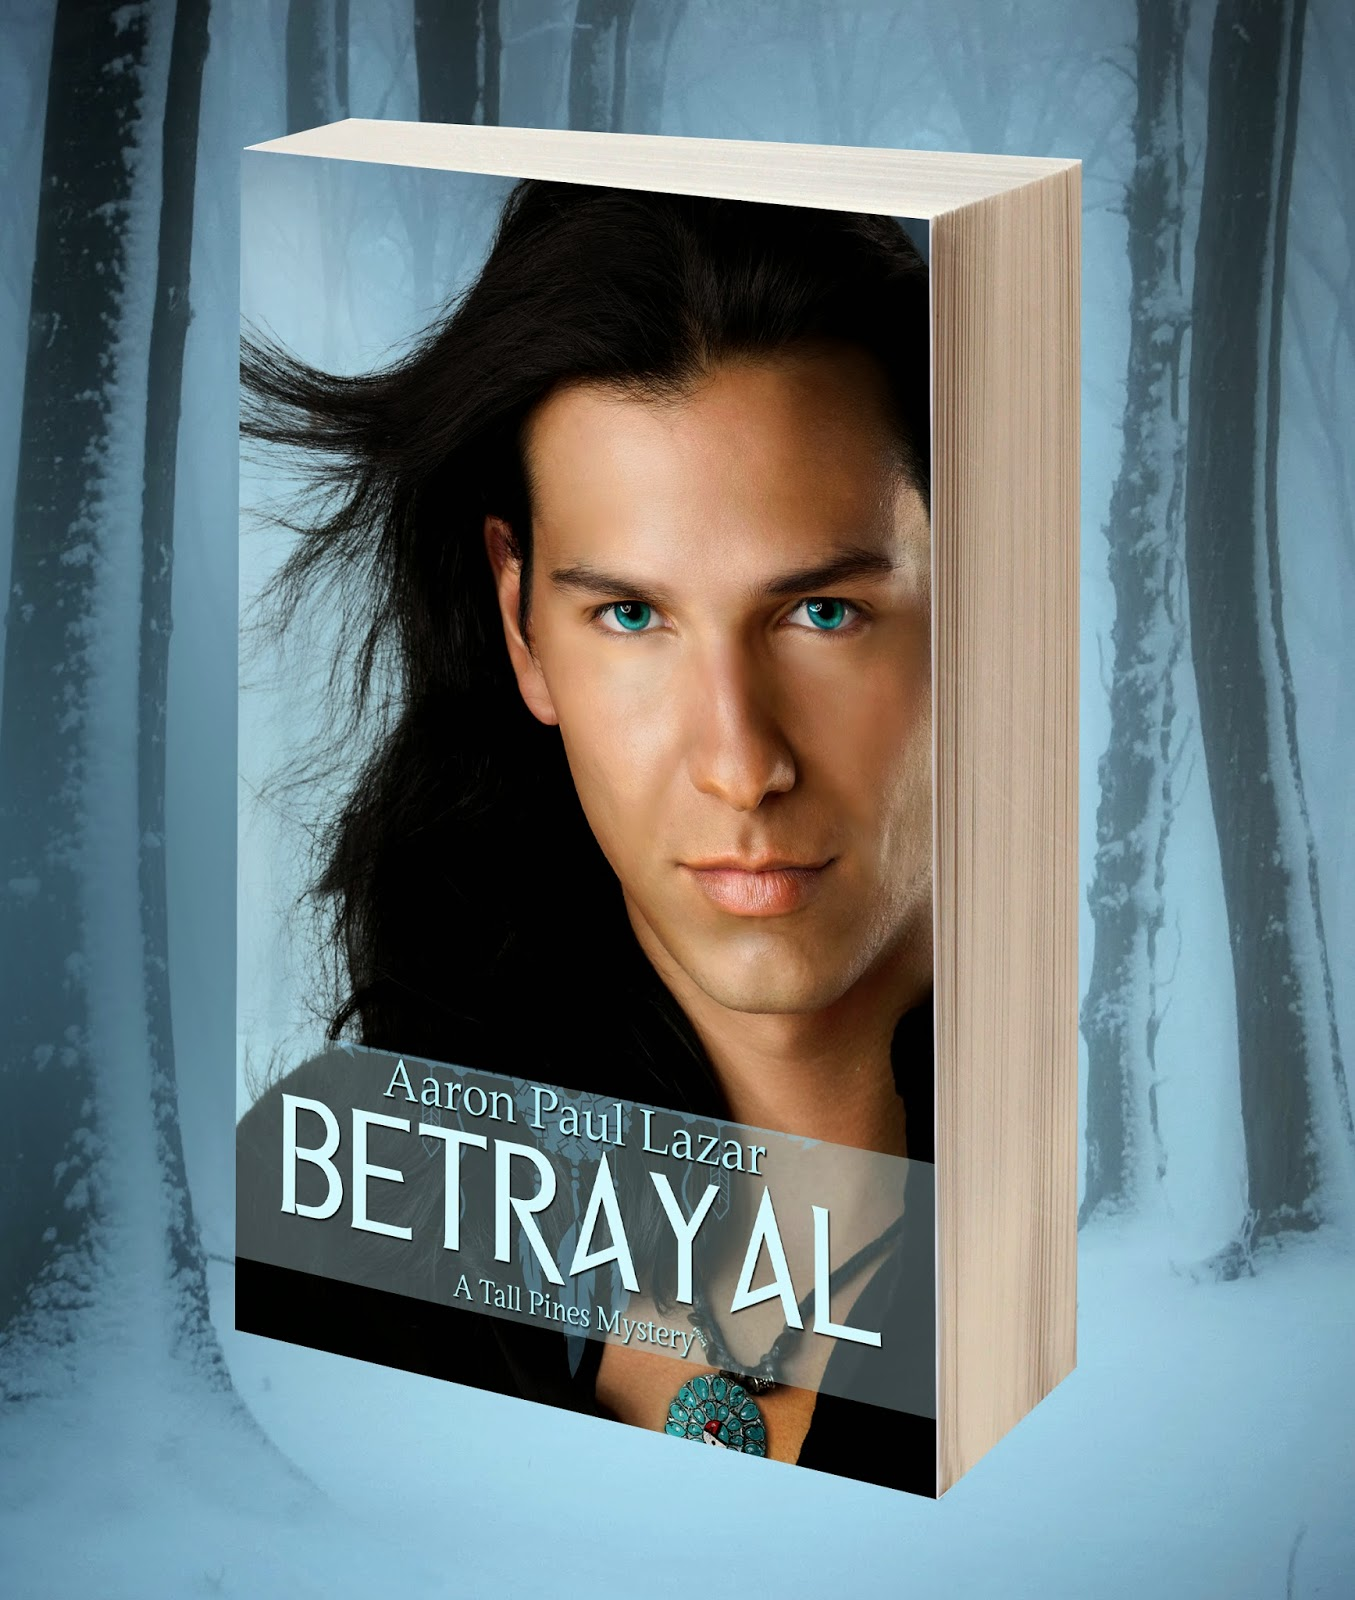 http://www.amazon.com/Betrayal-Tall-Pines-Mystery-Mysteries-ebook/dp/B00N2134W0/ref=pd_sim_kstore_1?ie=UTF8&refRID=12S0W4NJGB0JWN2B9CY0